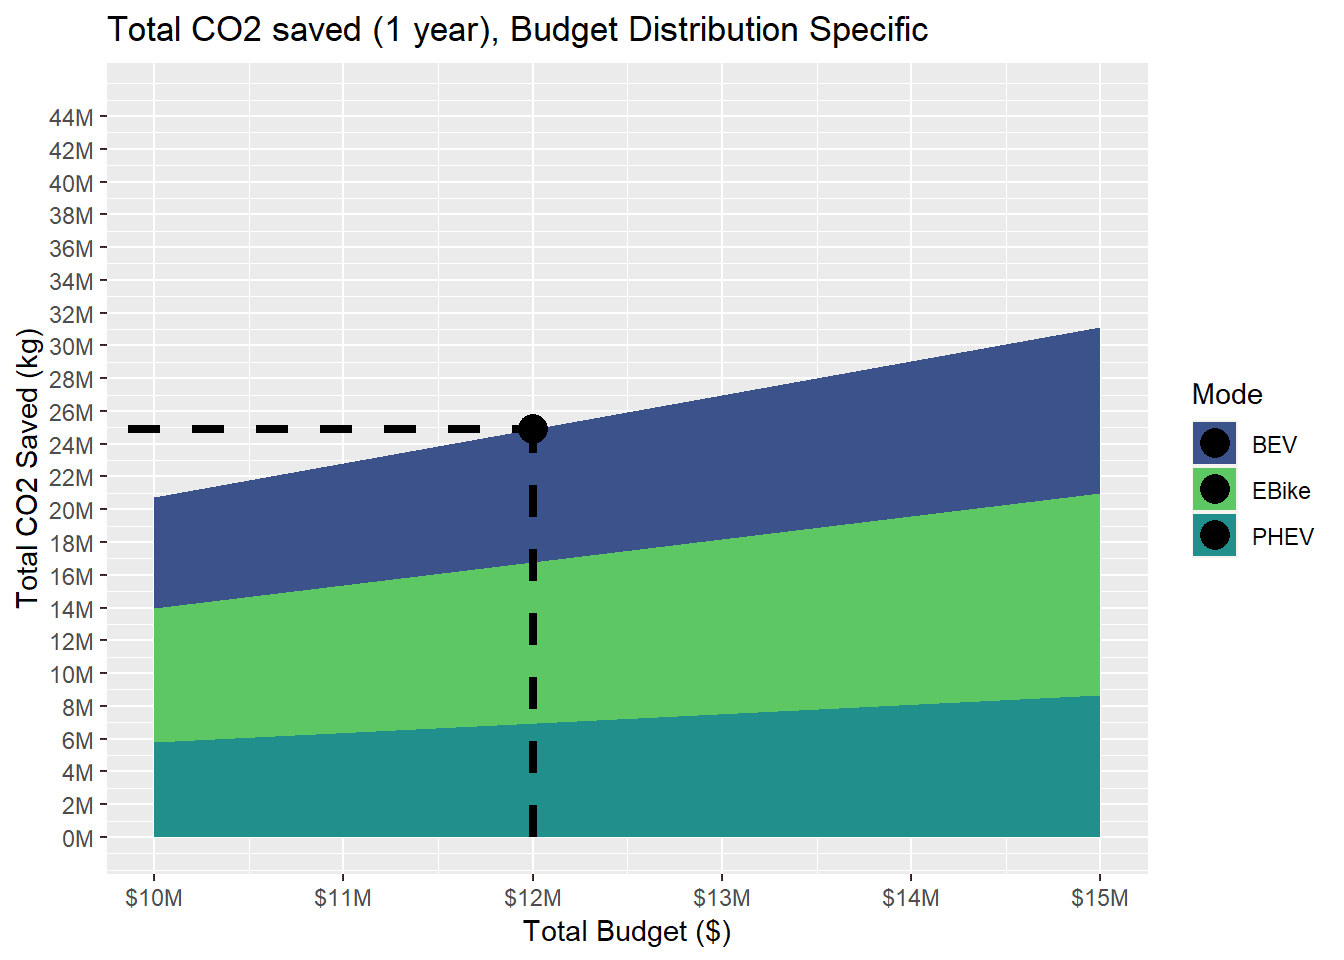 This plot displays the total amount of CO2 saved, in kg, thanks to the incentive program designed by the user. In this case, e-bikes save 10.2 million kg, battery electric vehicles save 8.5 million kg, and plug-in hybrid electric vehicles saved 6.8 millio